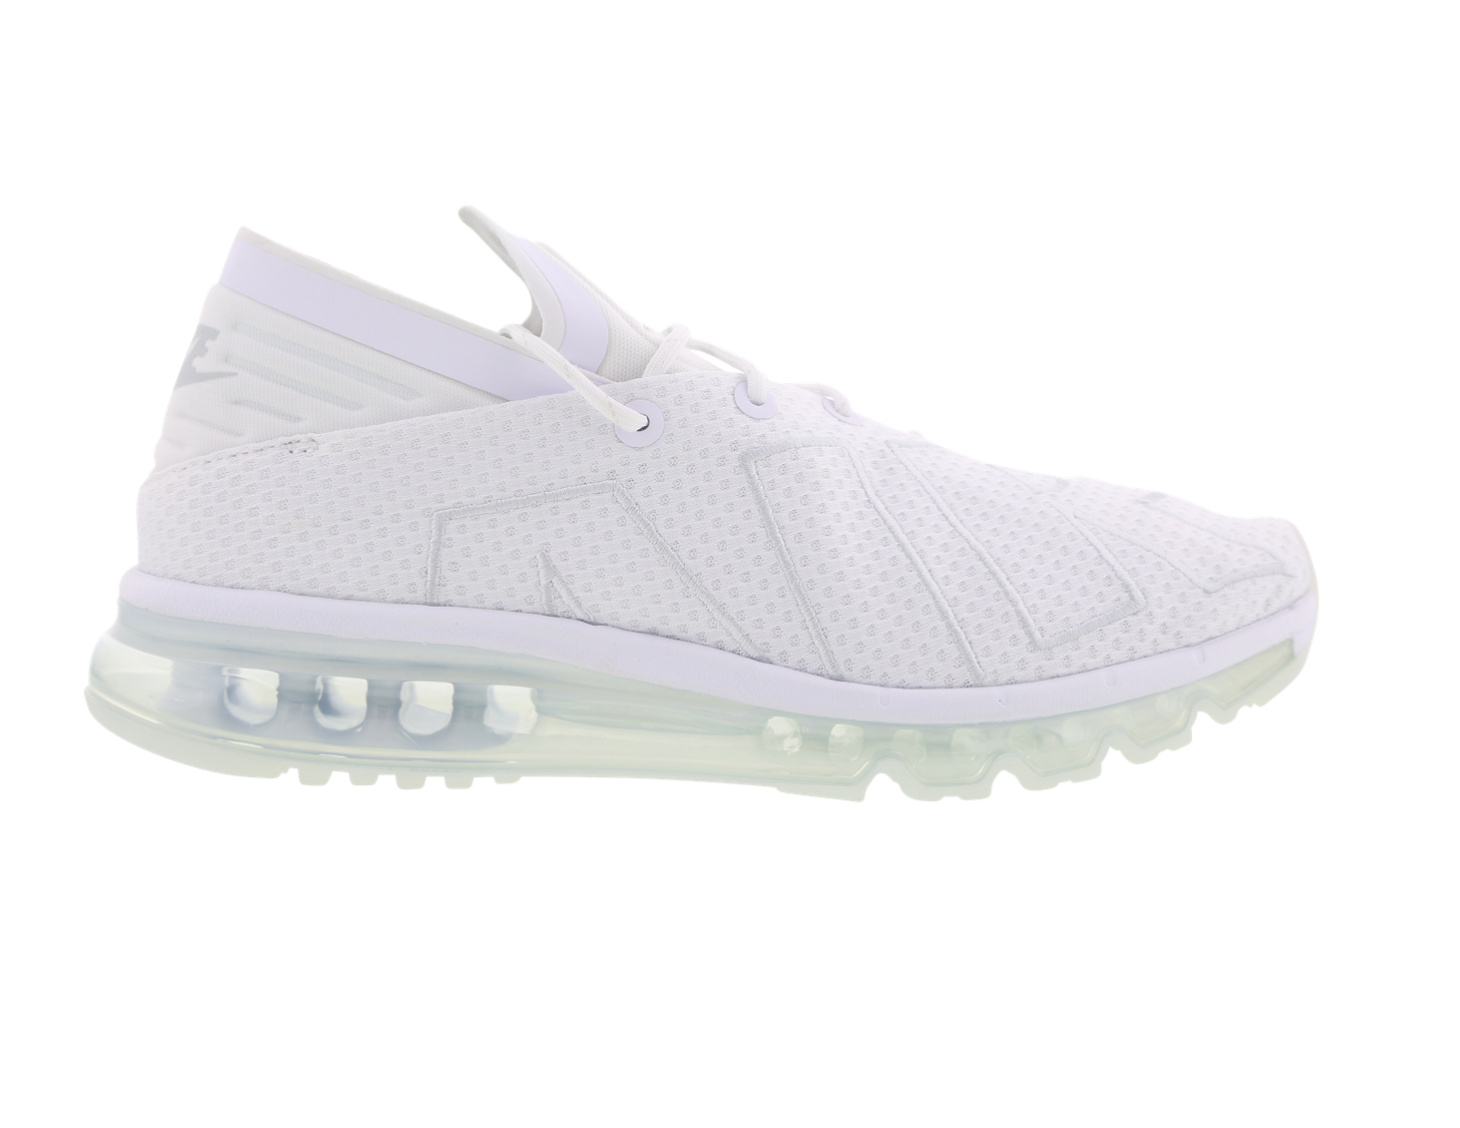 Homme NIKE AIR MAX FLAIR Blanc Running Baskets Baskets Baskets 942236 100 | Exquise (in) De Fabrication